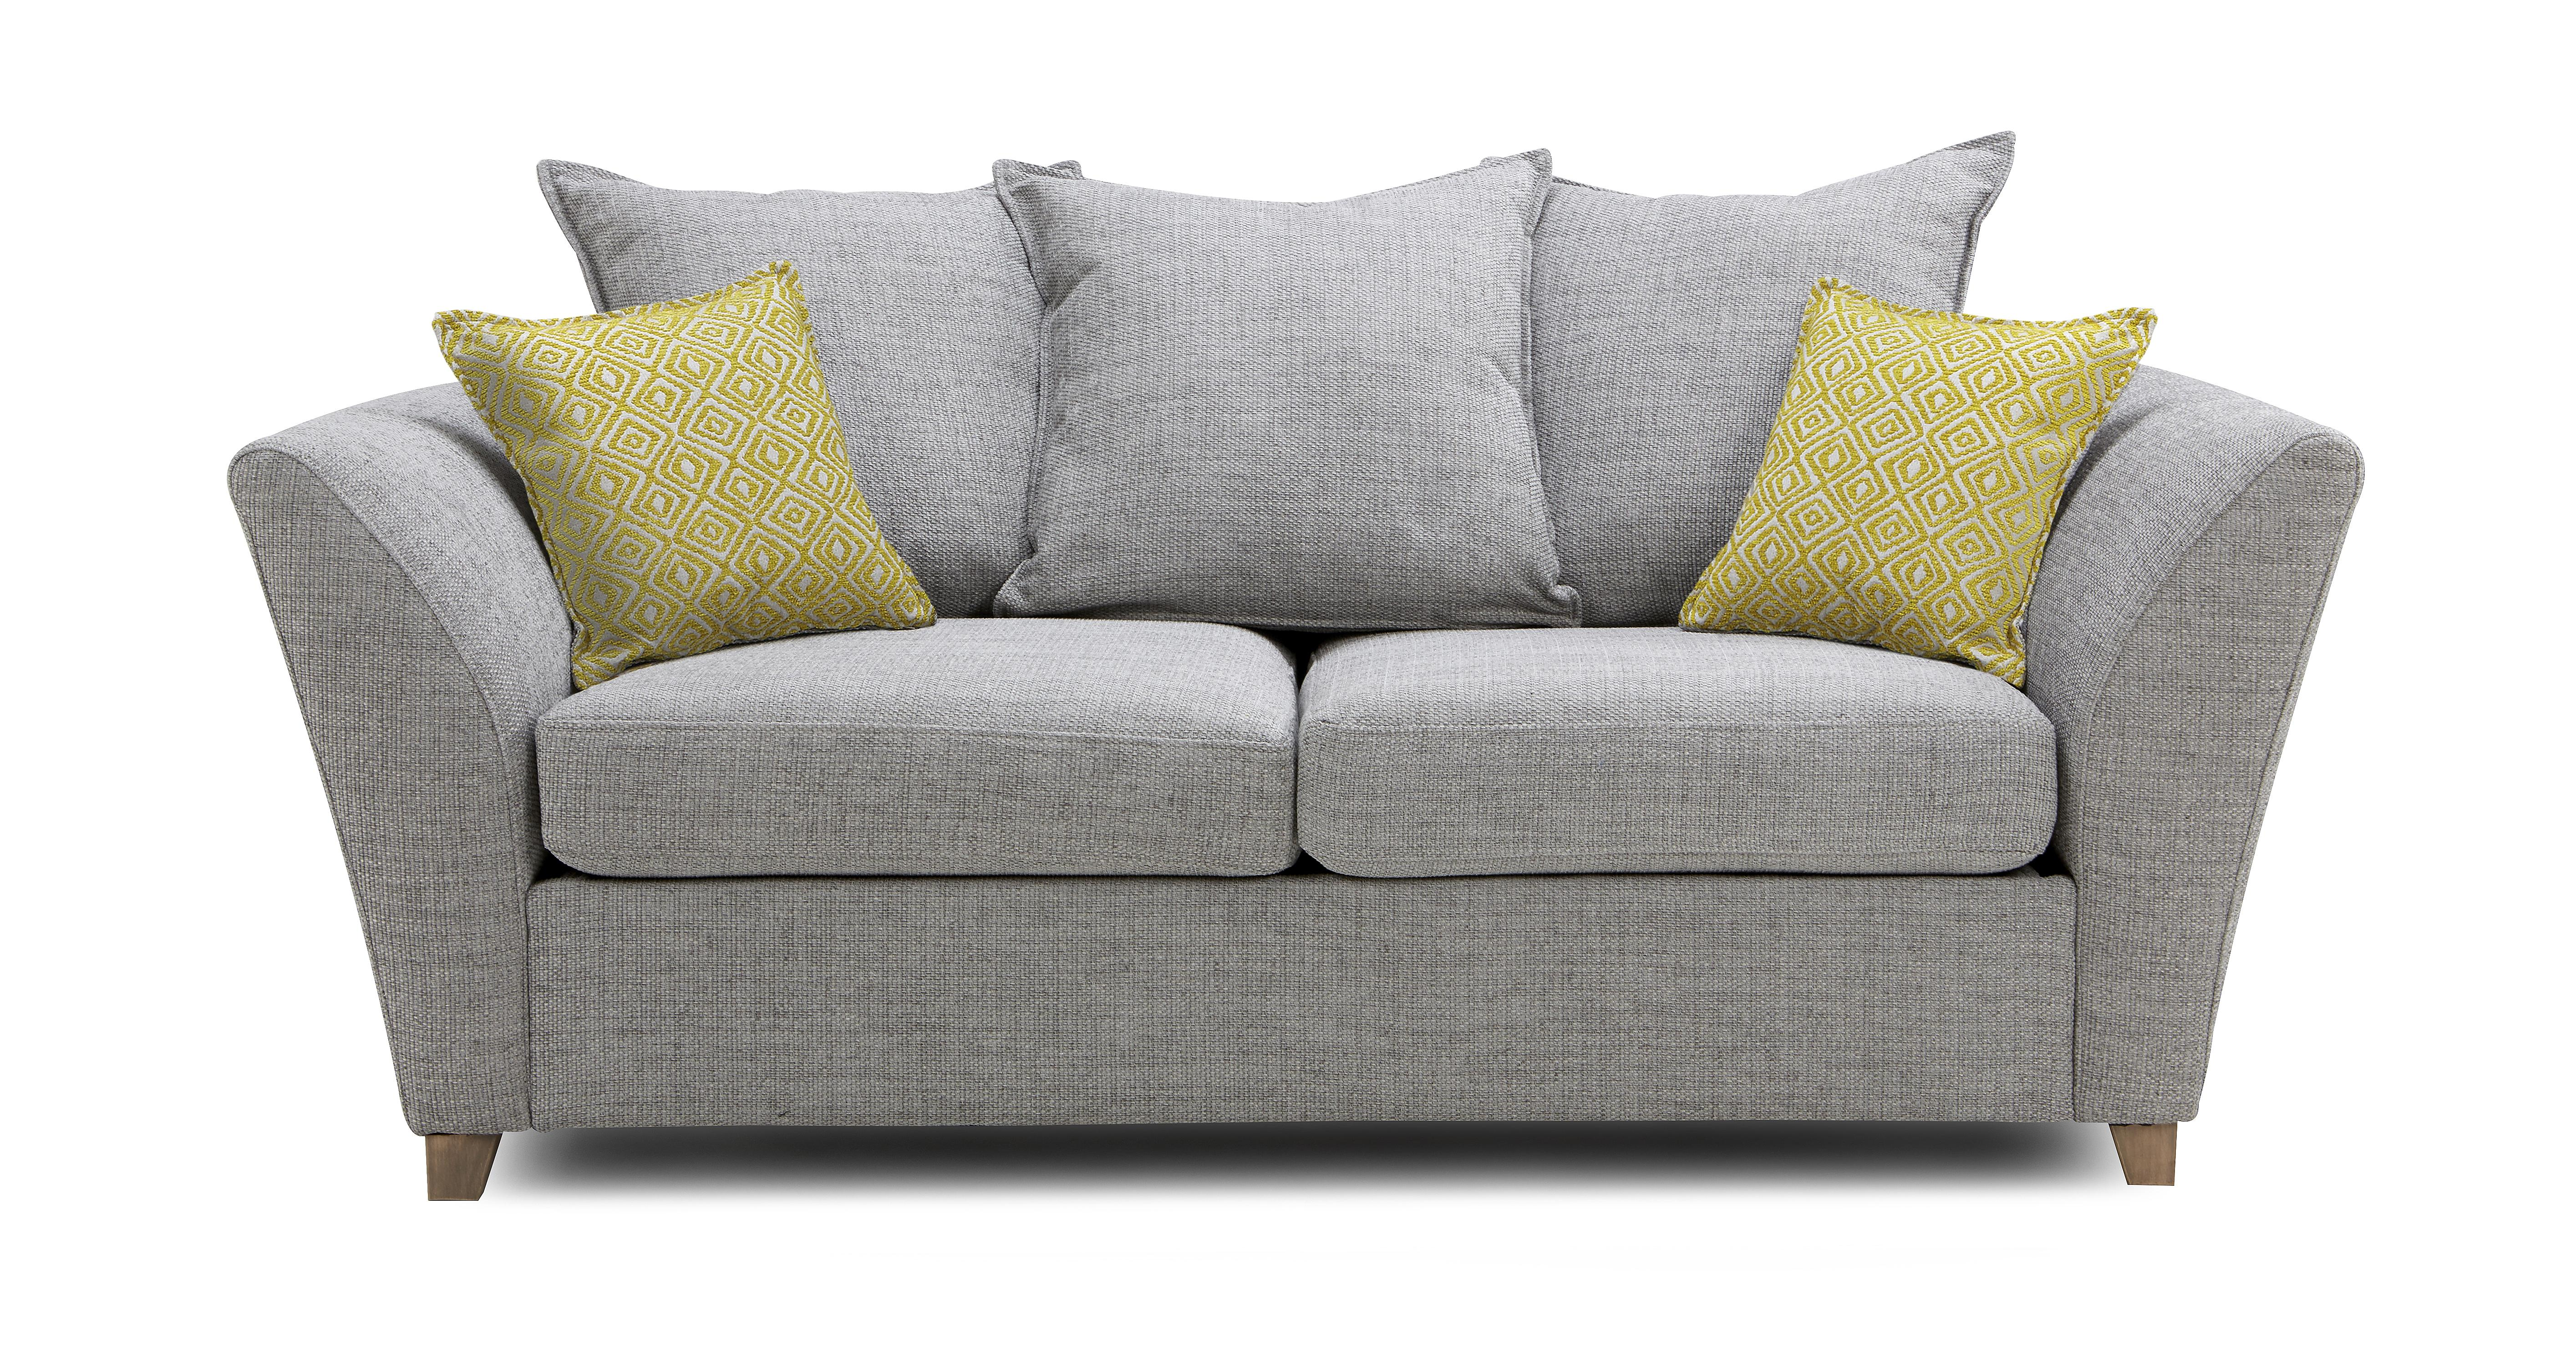 Harlow large 2 seater pillow back deluxe sofa bed dfs for Beds harlow